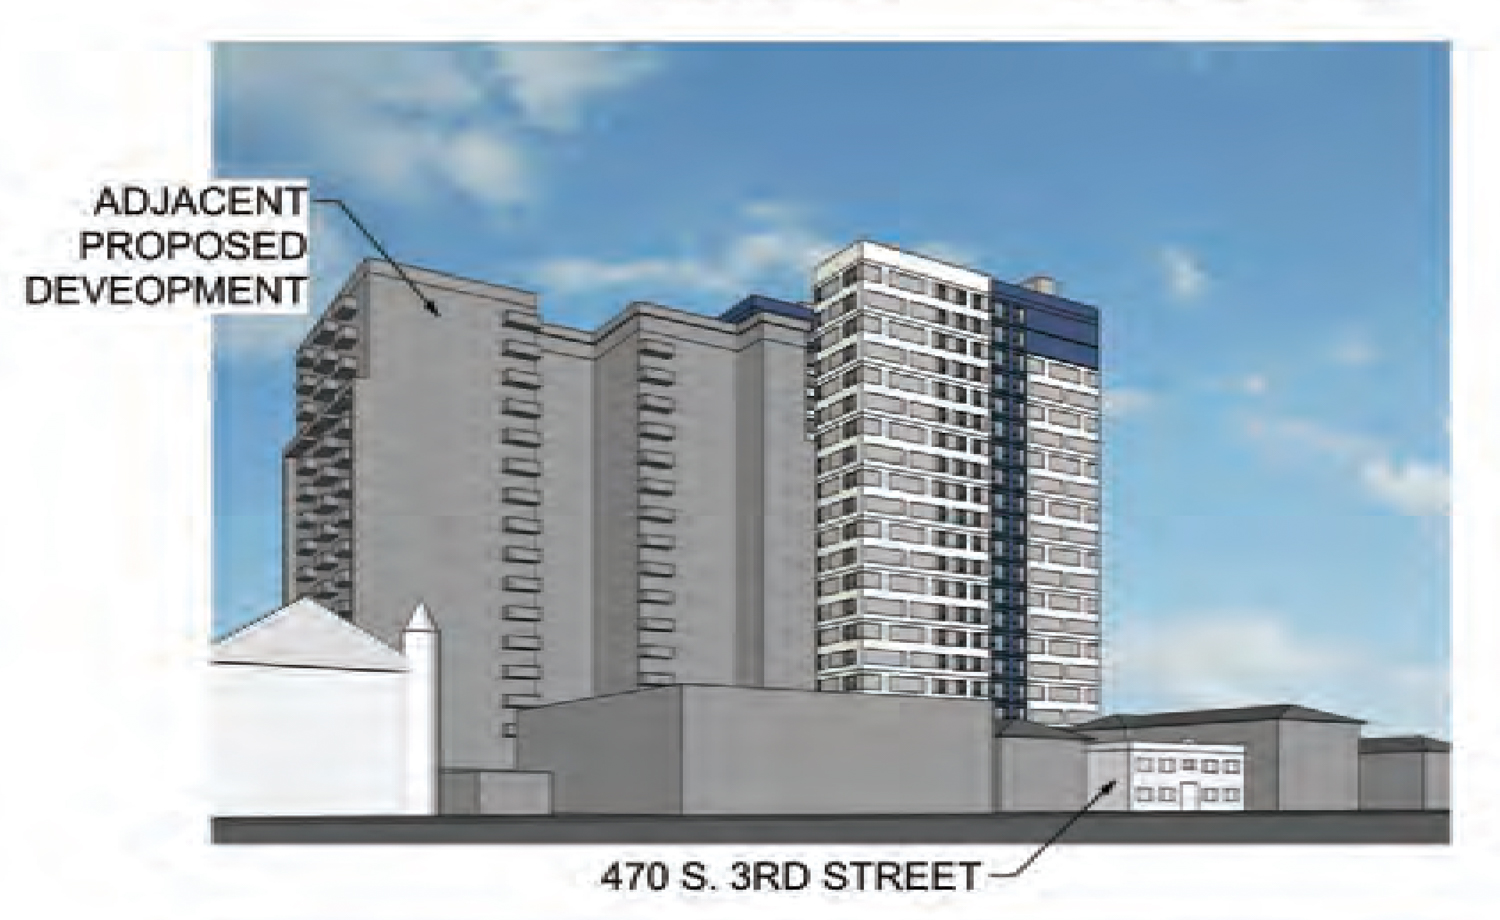 475 South 4th Street with adjacent proposed development massed, drawing courtesy BDE Architecture